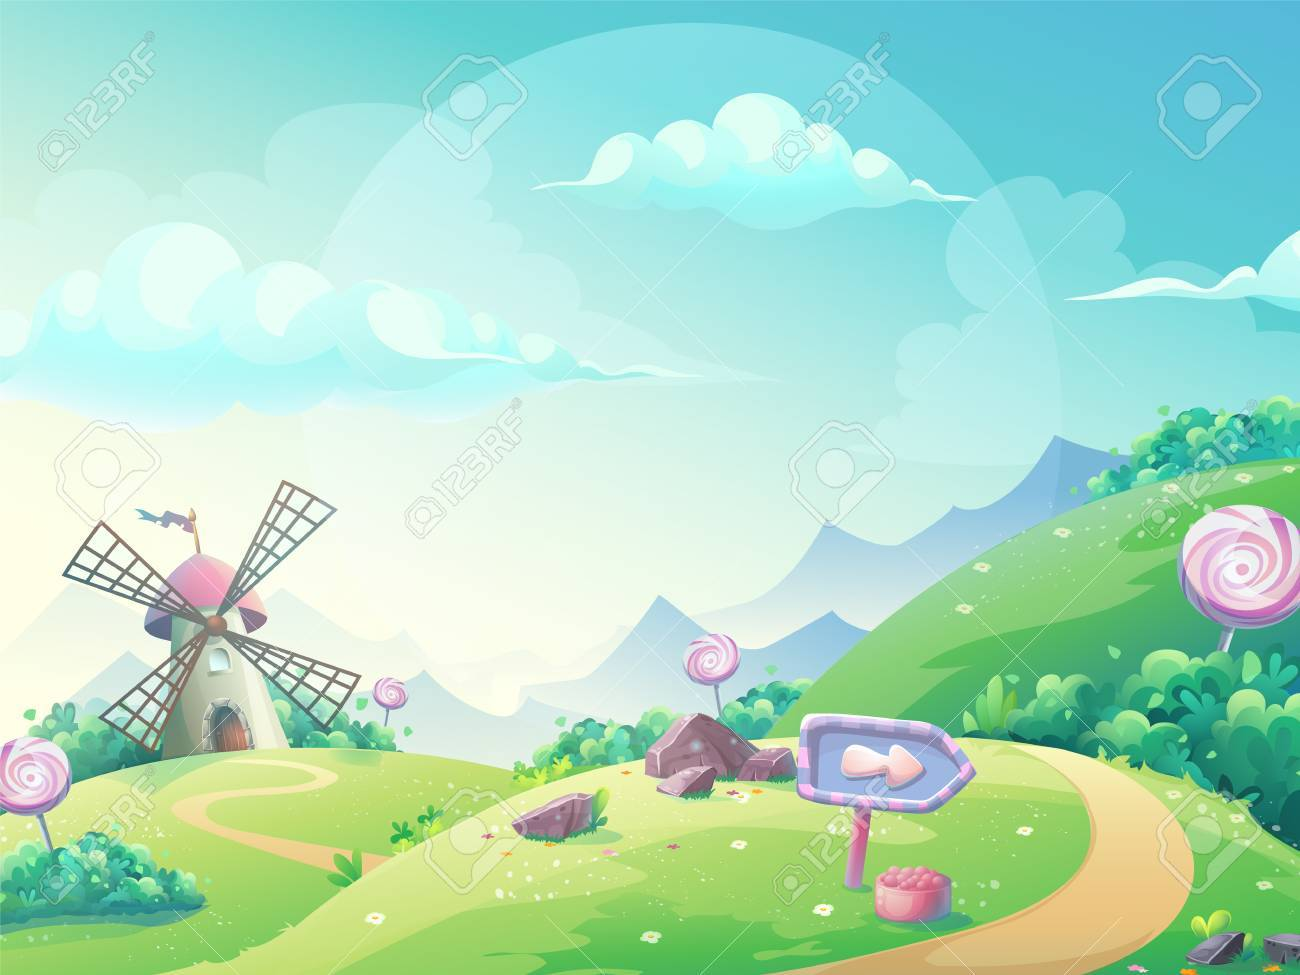 Landscape illustration with marmalade candy mill. - 73671263